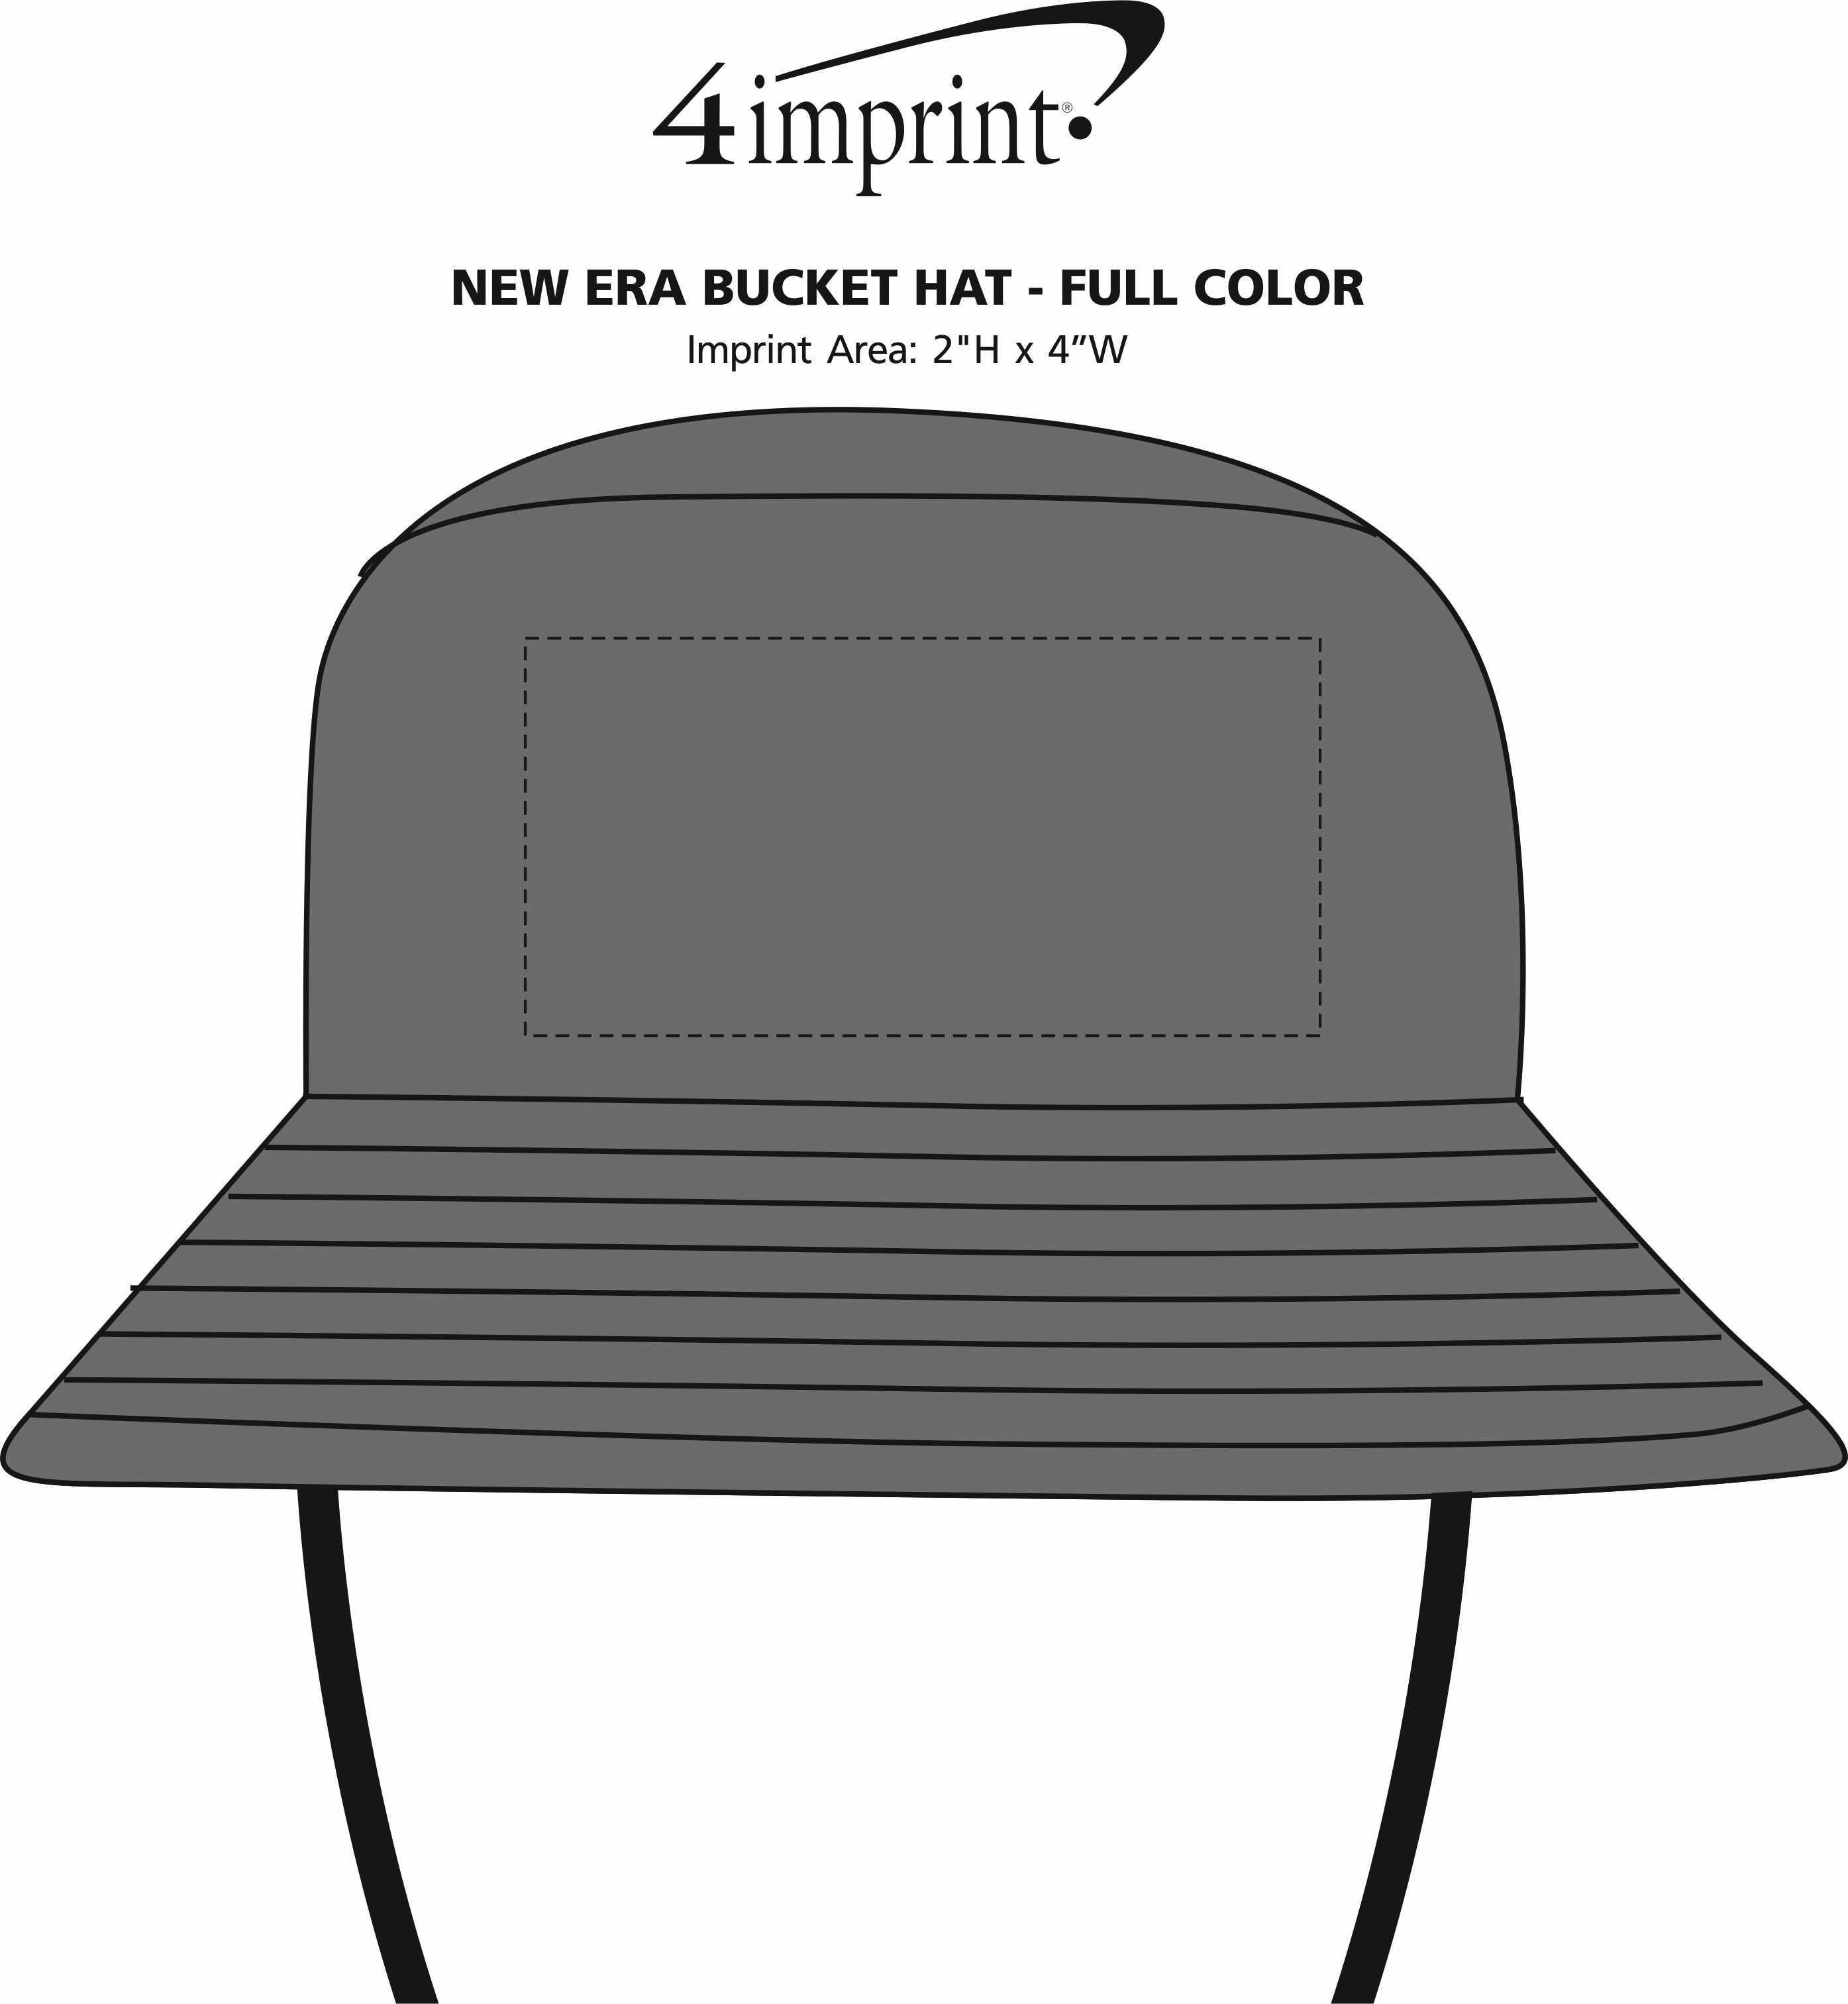 Imprint Area of New Era Bucket Hat - Full Color